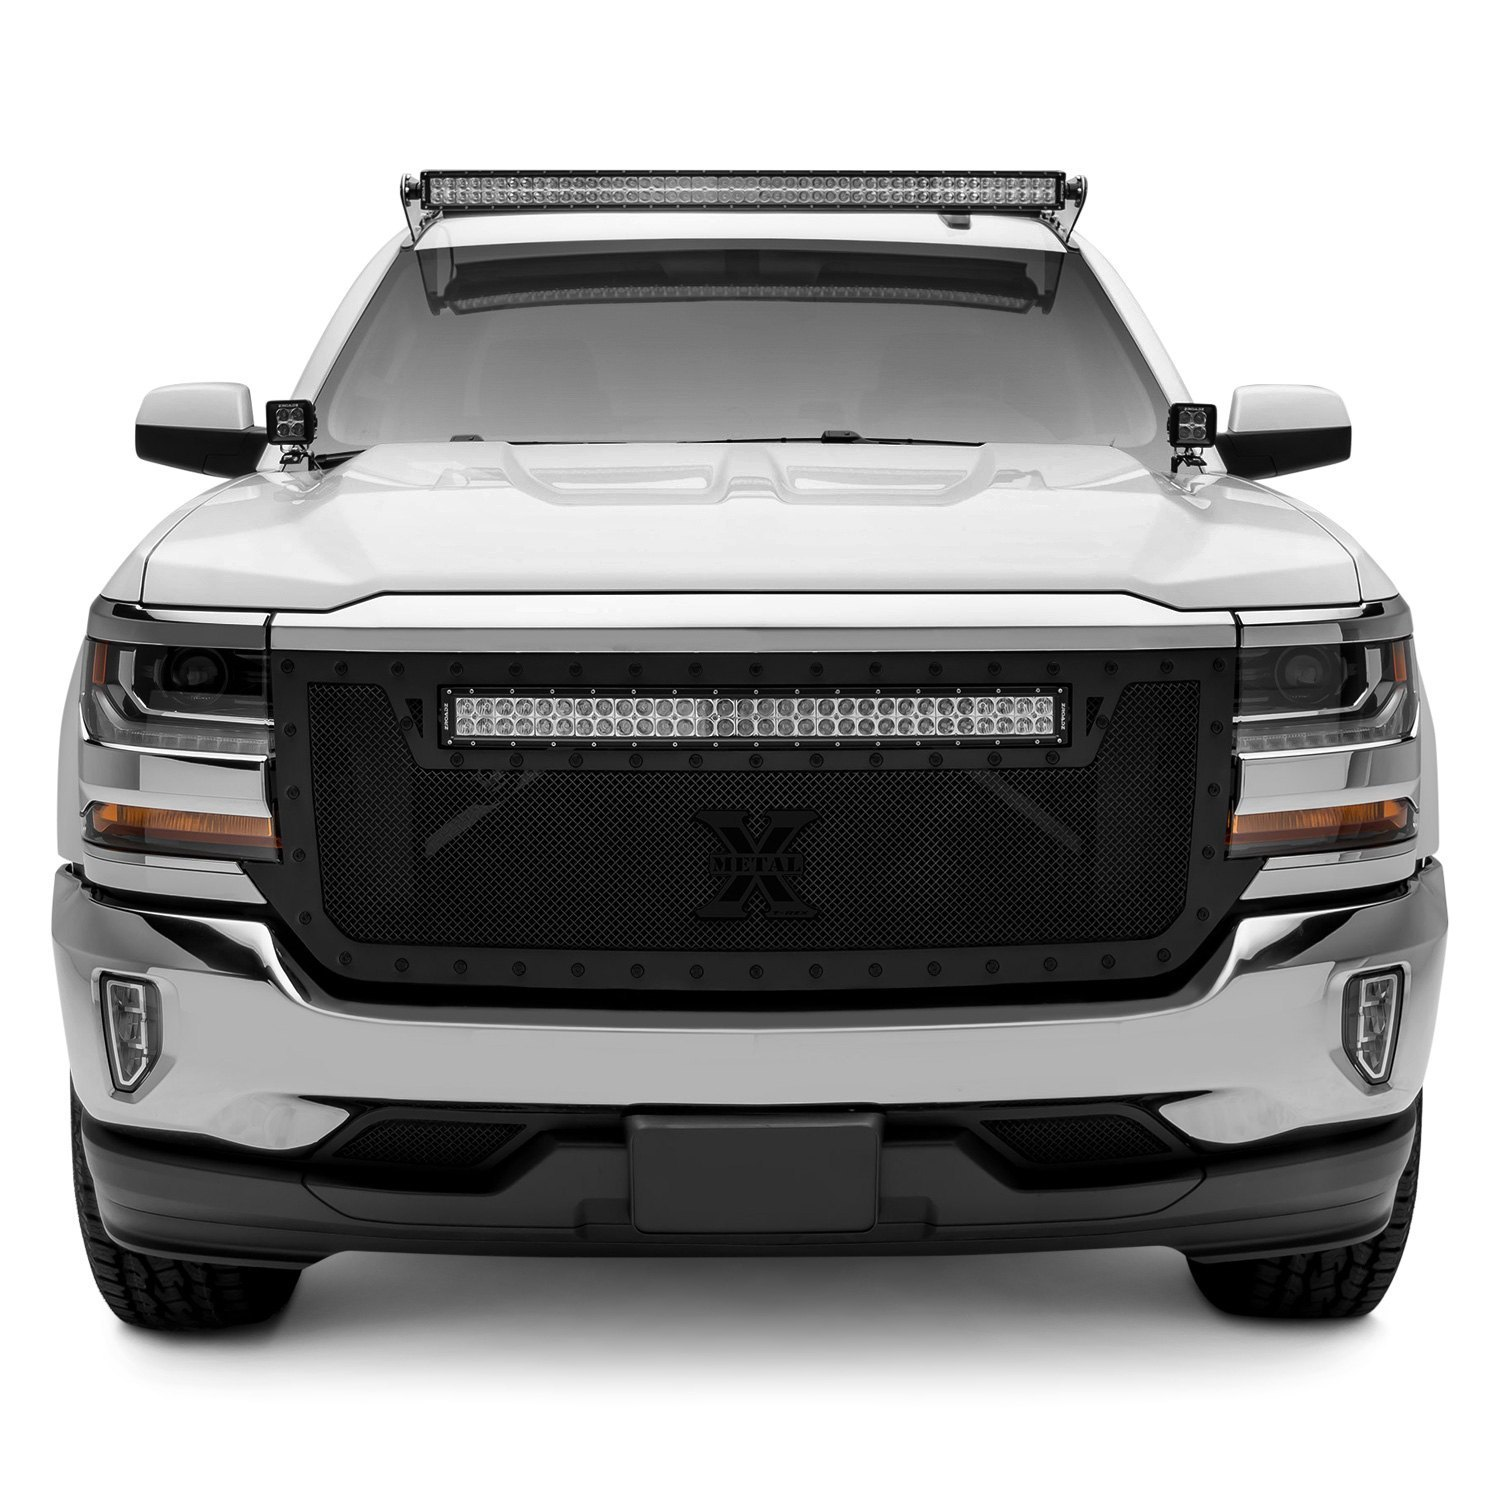 zroadz gmc sierra 2015 2017 roof mounts for 50 curved. Black Bedroom Furniture Sets. Home Design Ideas